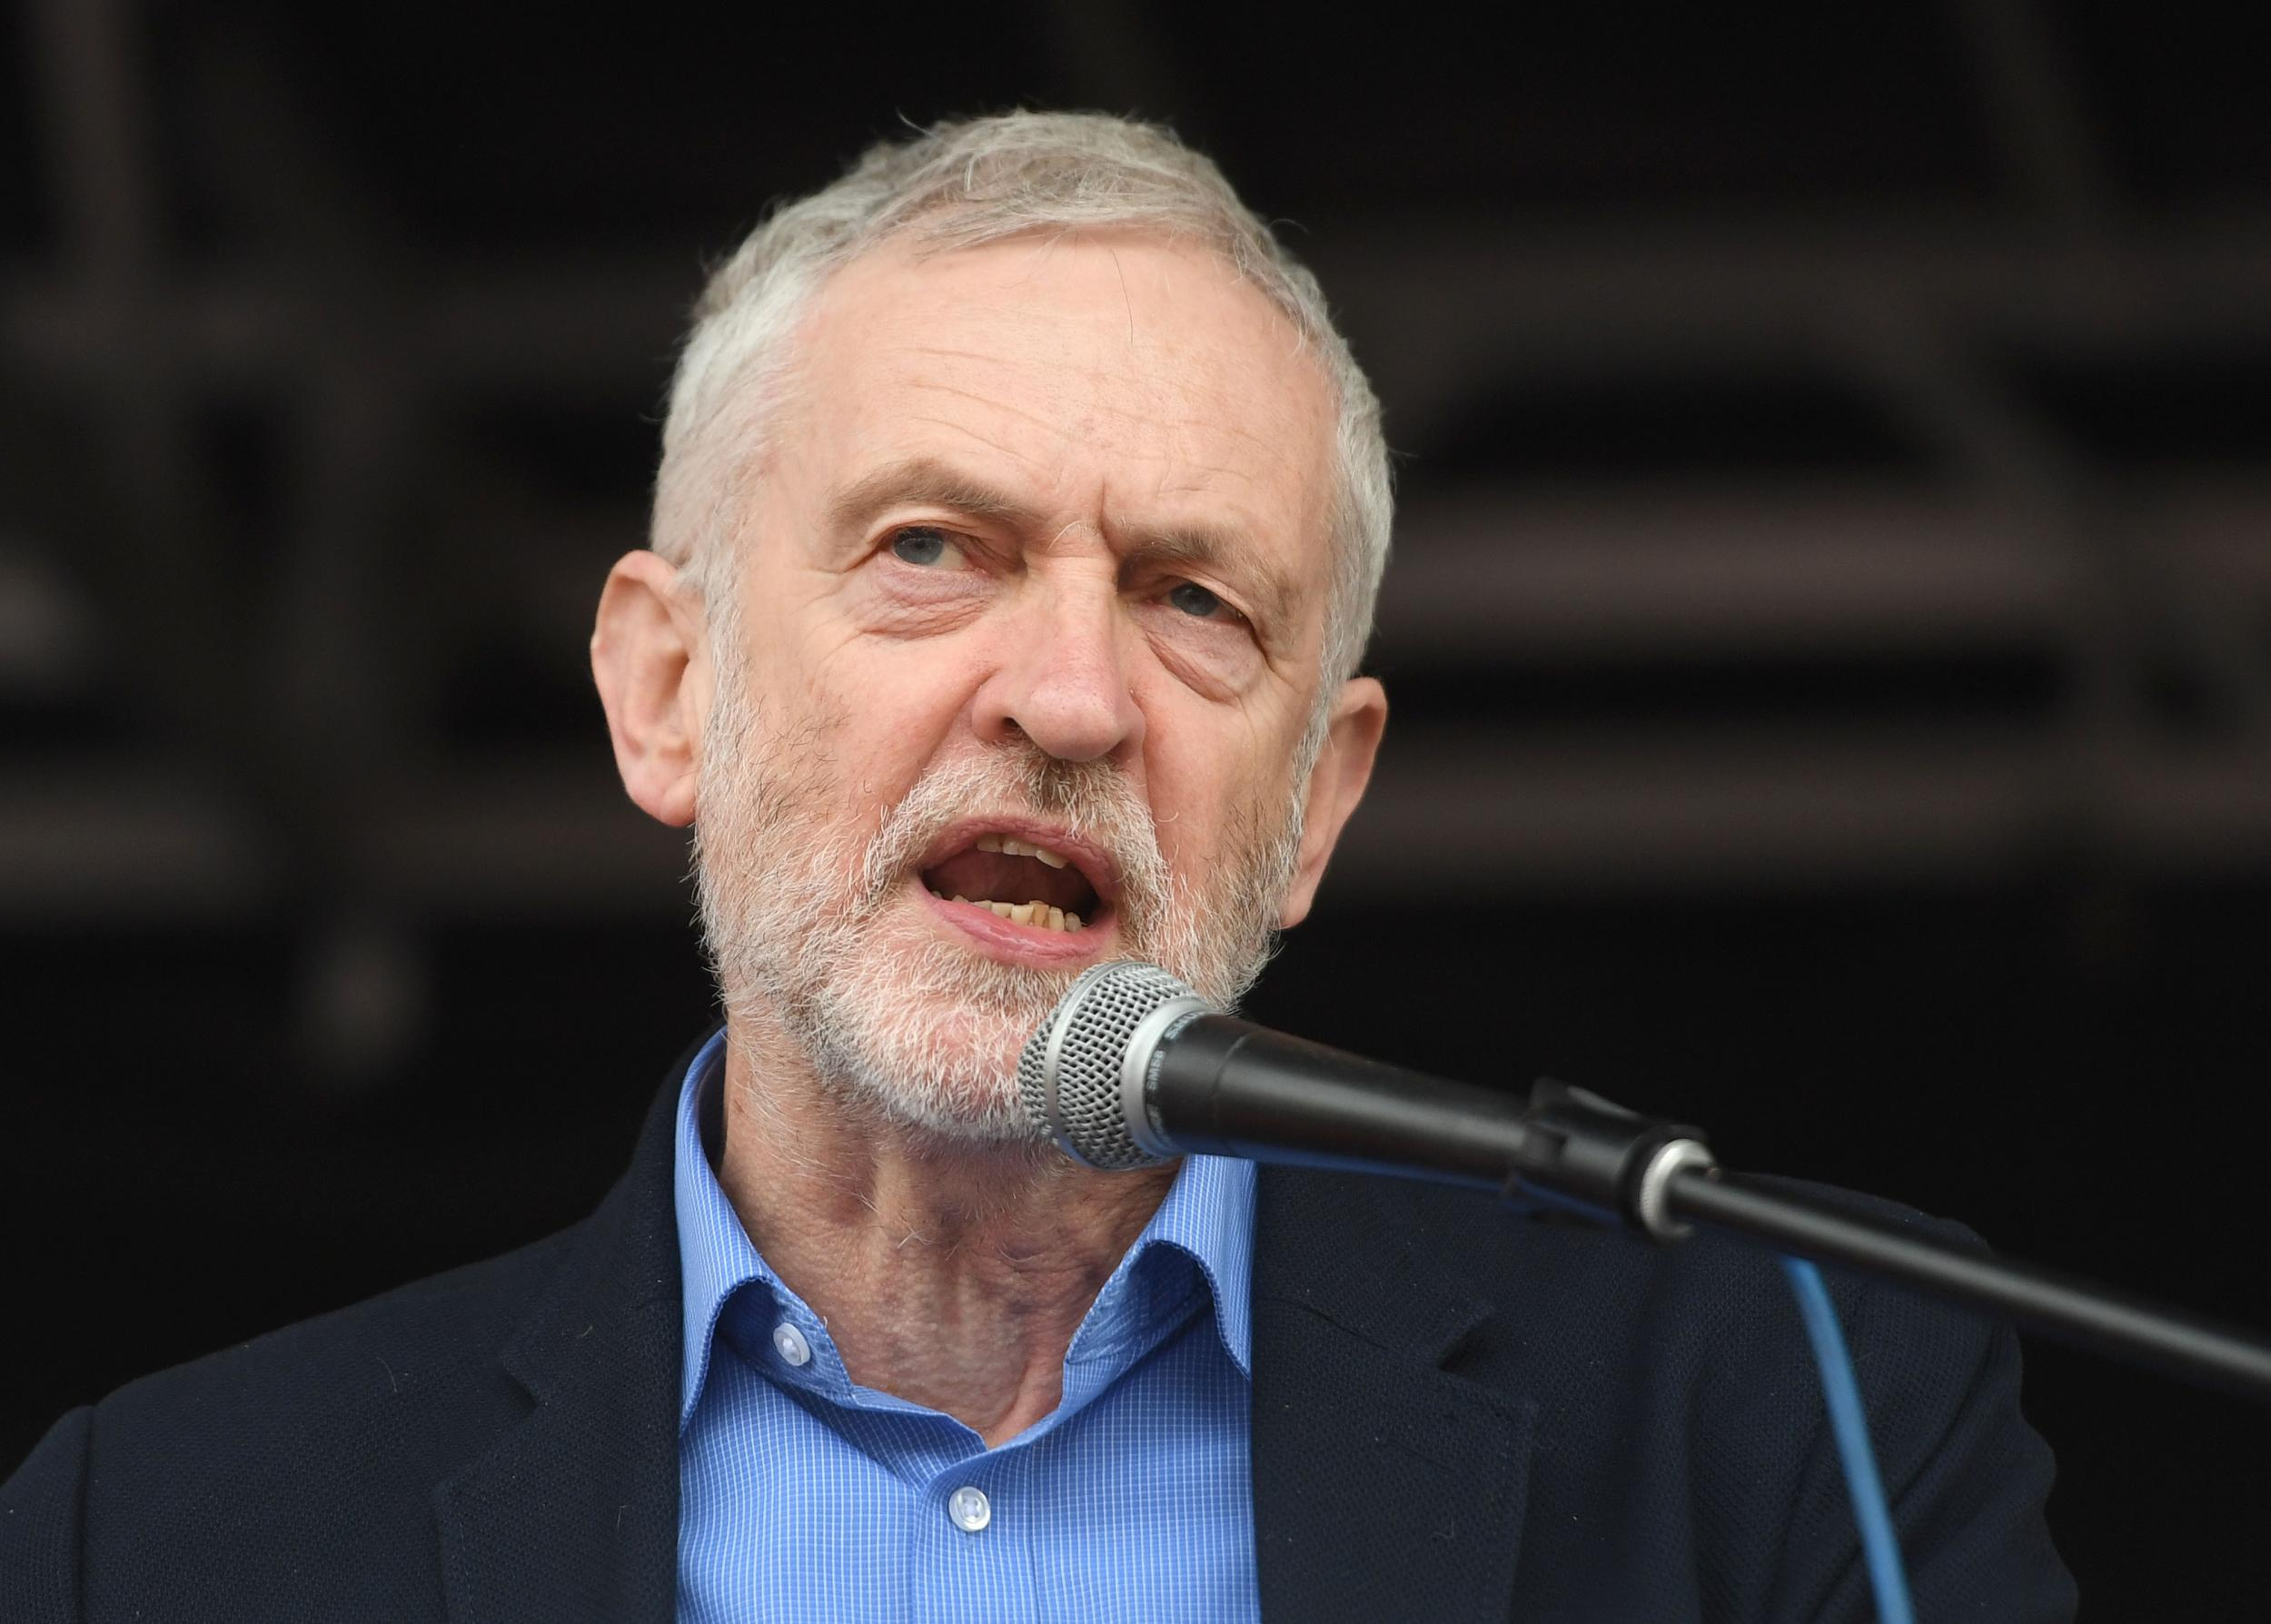 'Don't blame immigrants for Britain's economic problems,' Jeremy Corbyn says